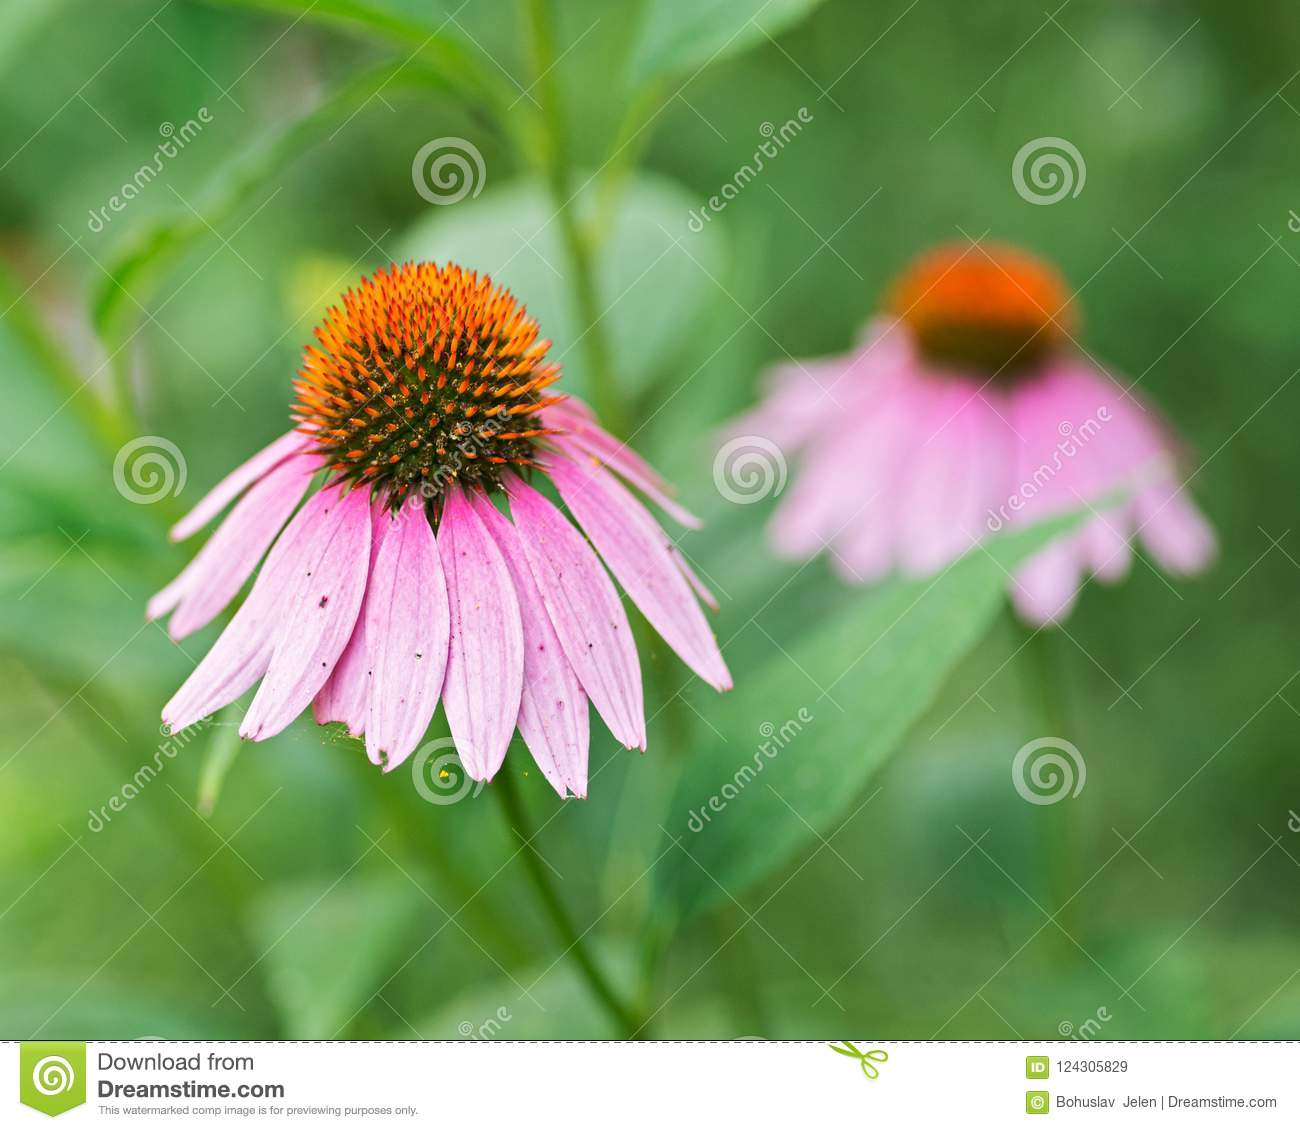 Pale purple echinacea purpurea flowering perennial plant from Asteraceae family.